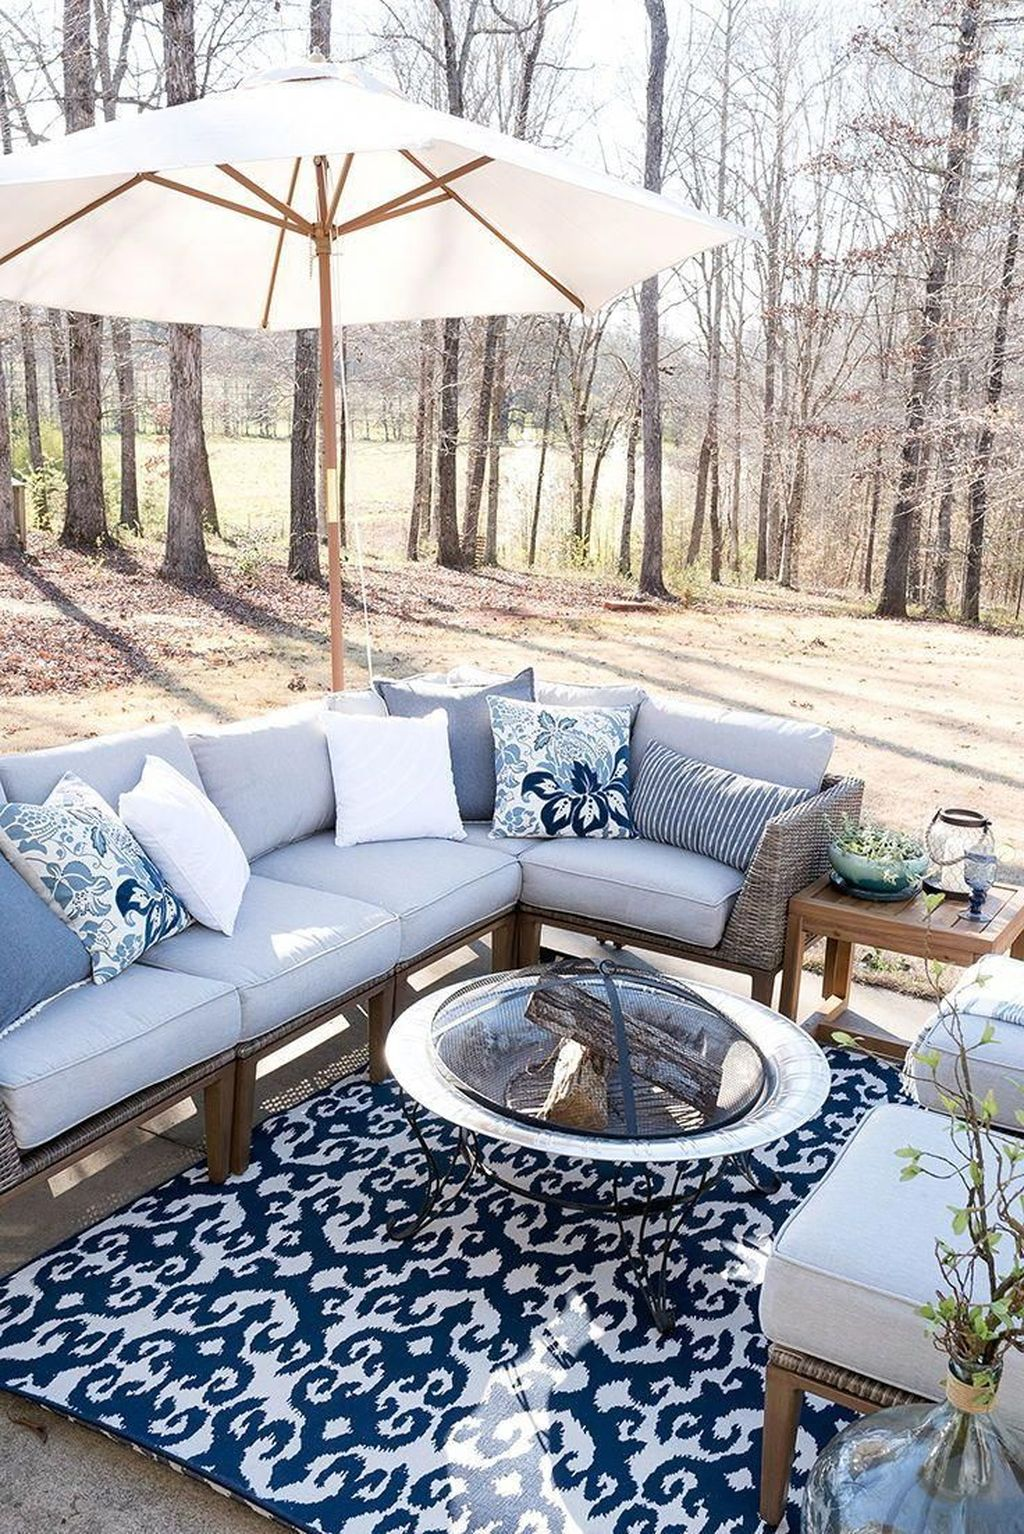 Admirable Cozy Patio Design Ideas To Relaxing On A Sunny Day 11